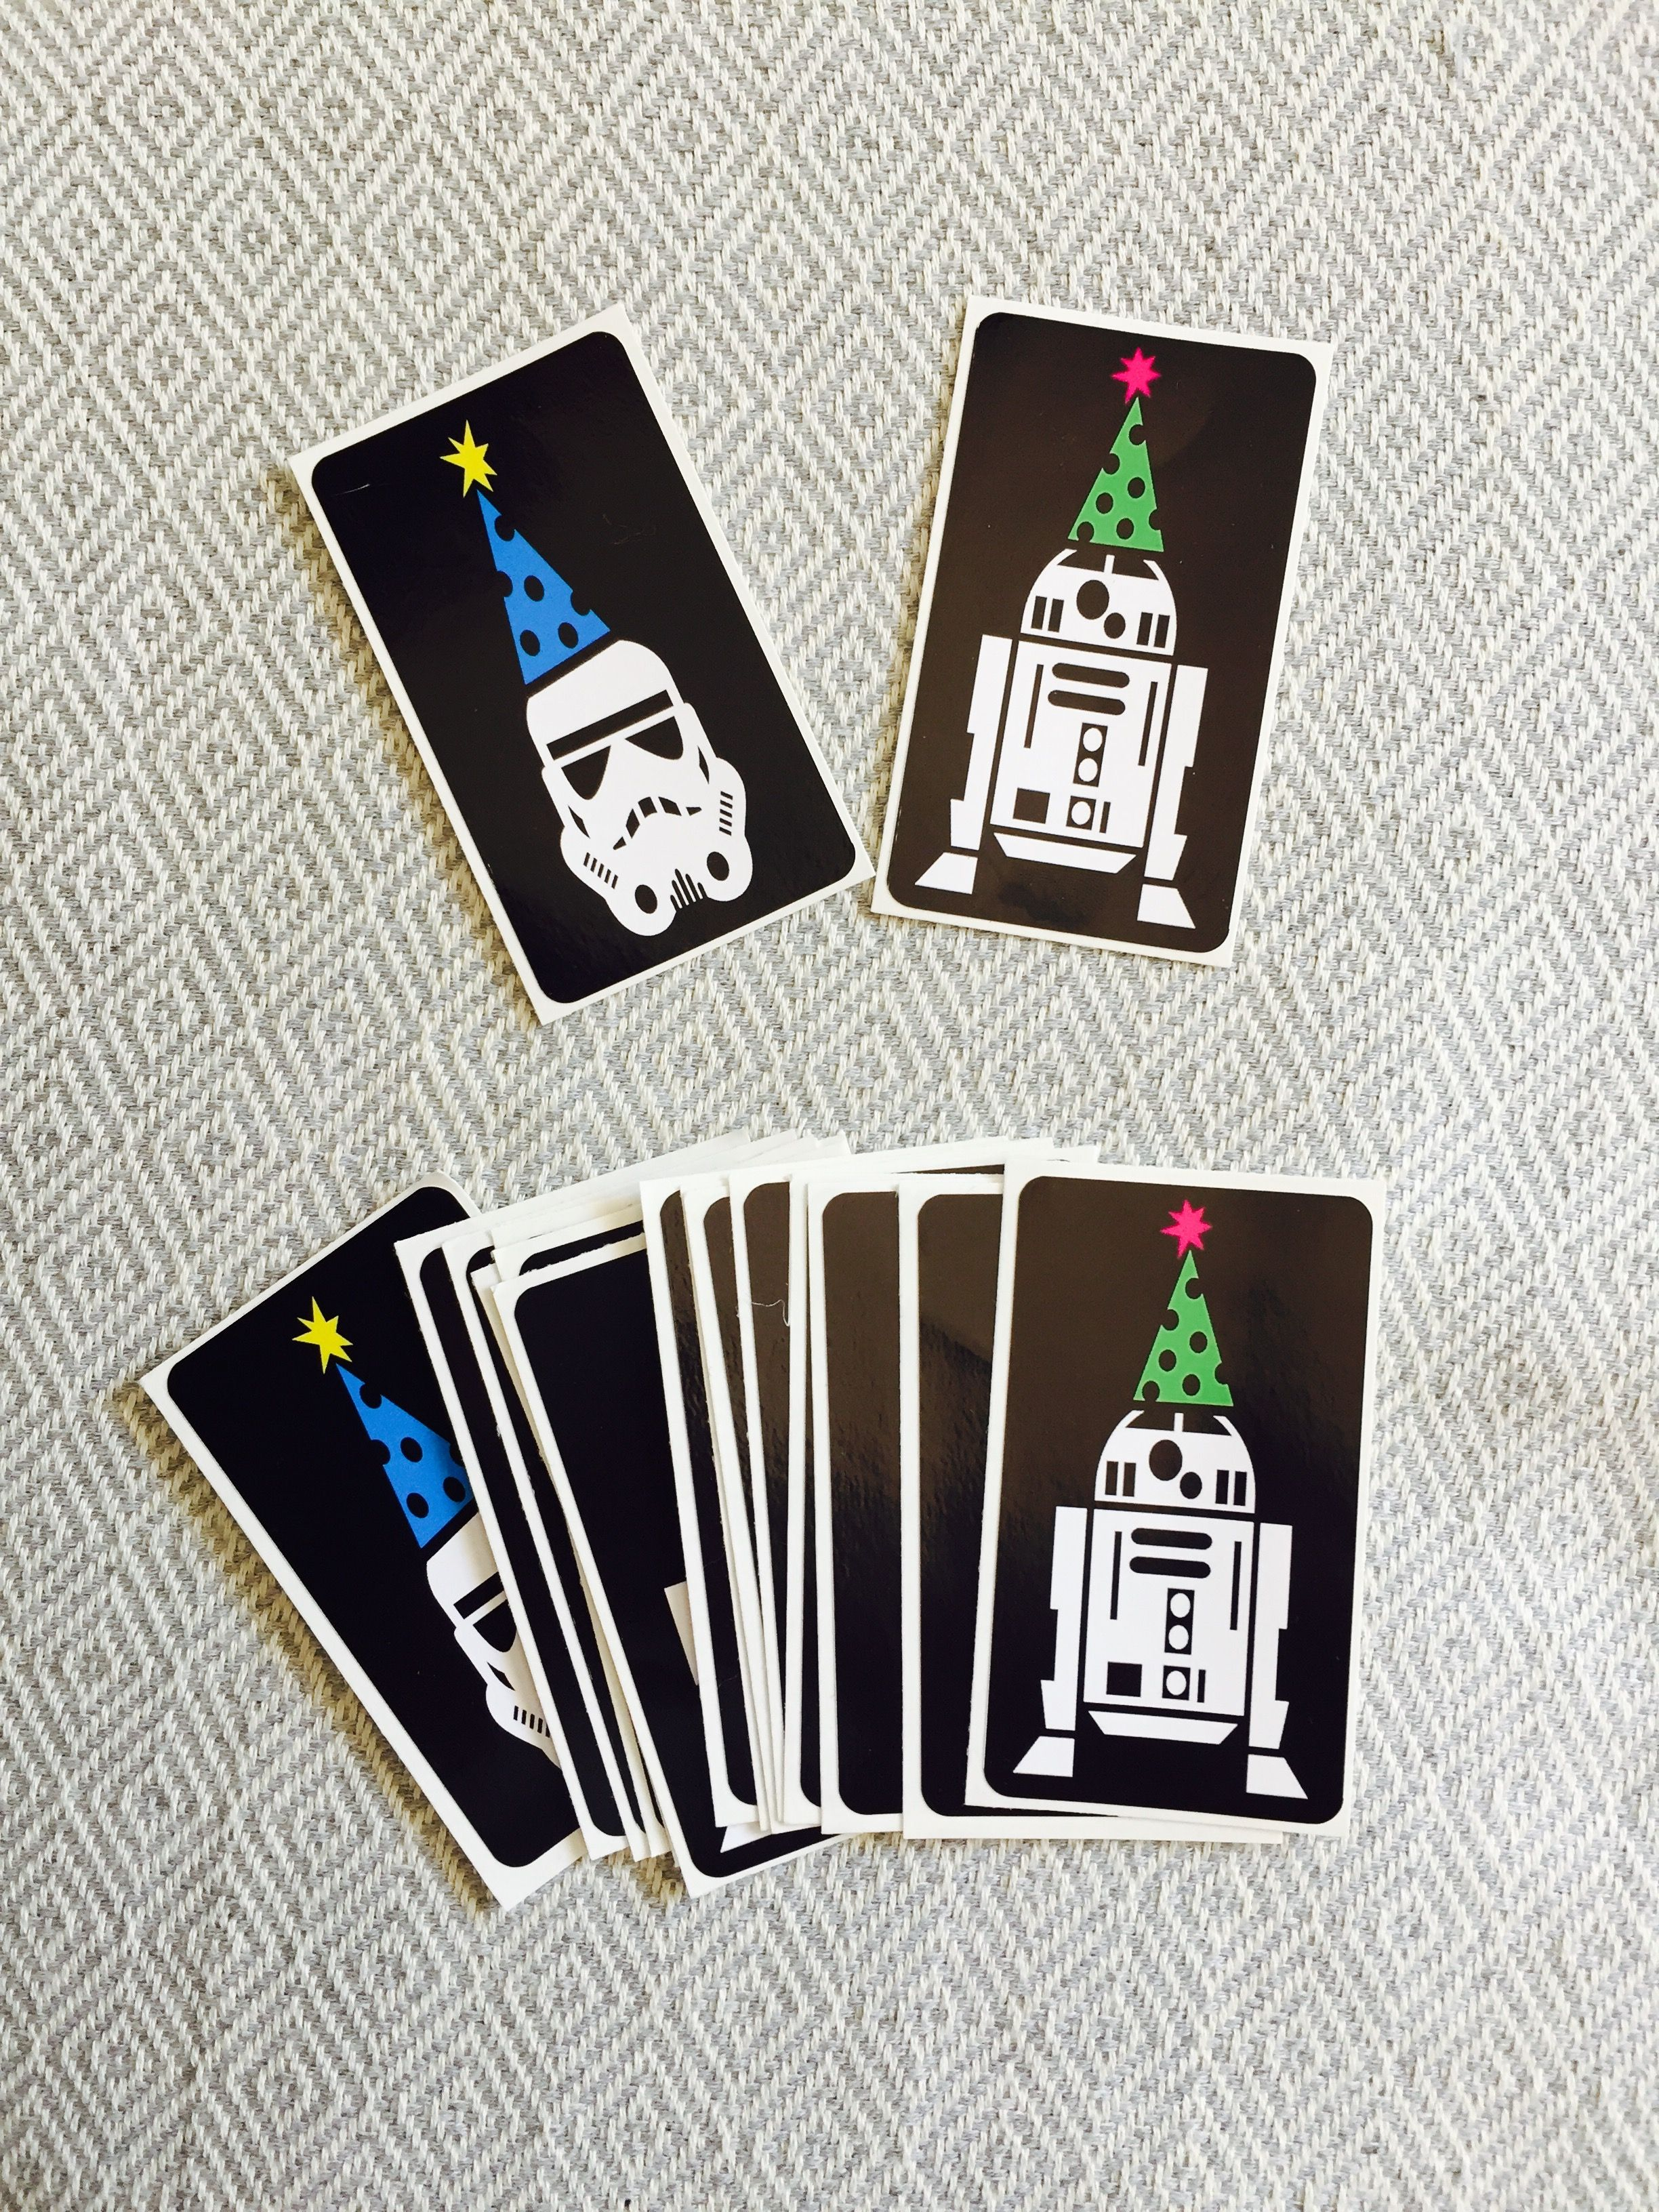 Top shelf stickers best quality great prices custom stickers for your own business